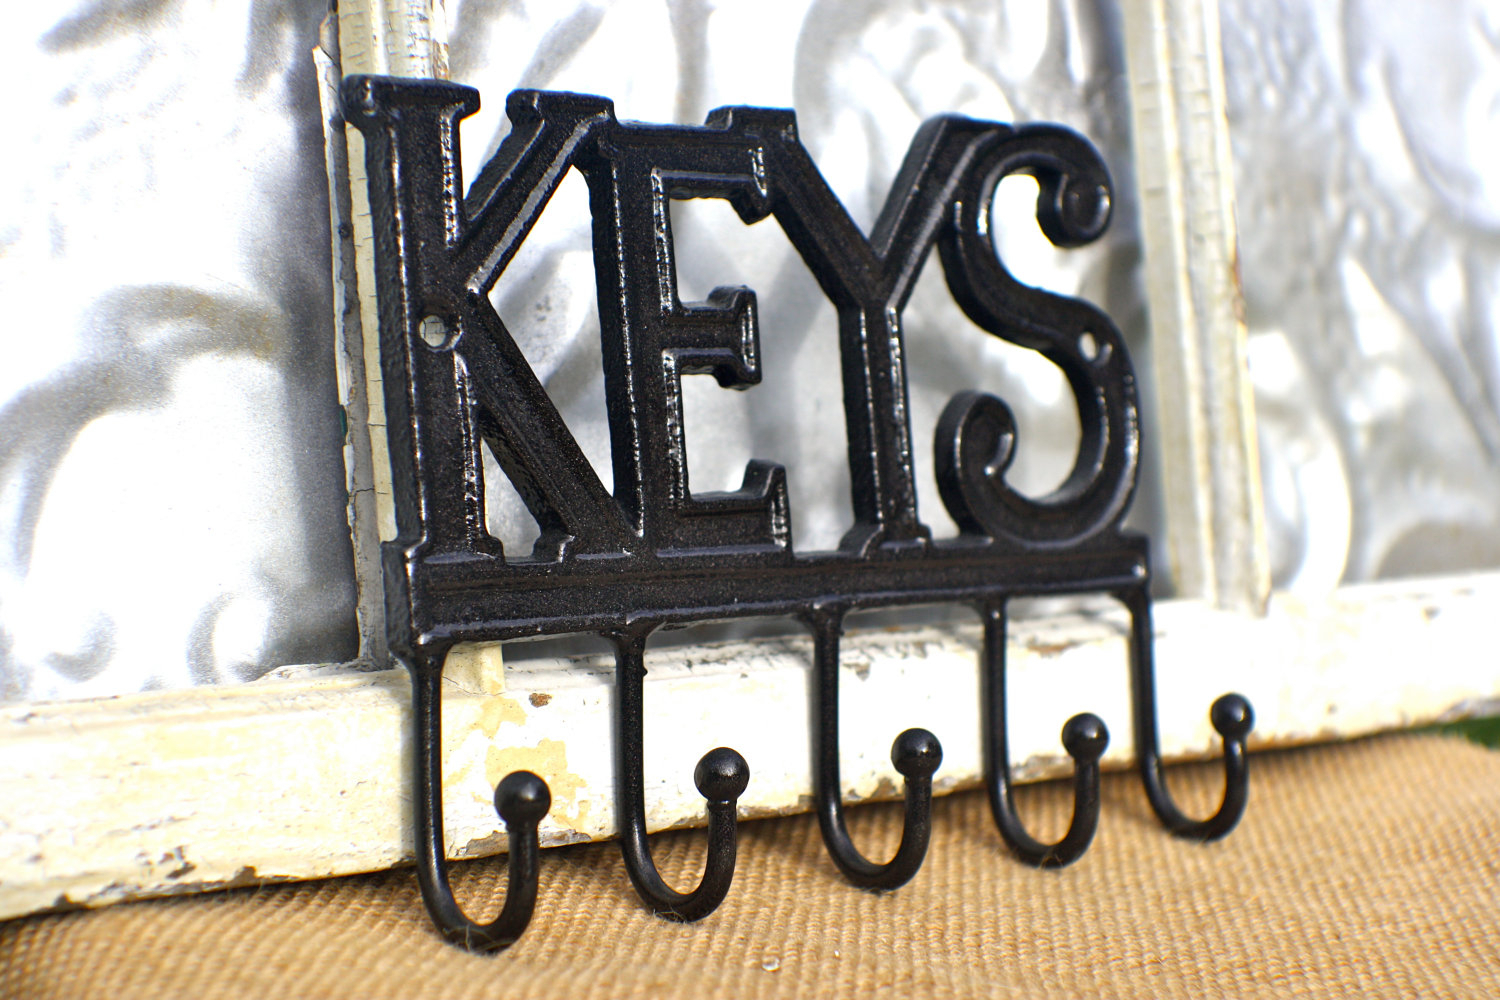 Decorative Key Hooks For Wall Hanging Black Vintage Metal Throughout Black Metal Key Wall Decor (View 12 of 30)